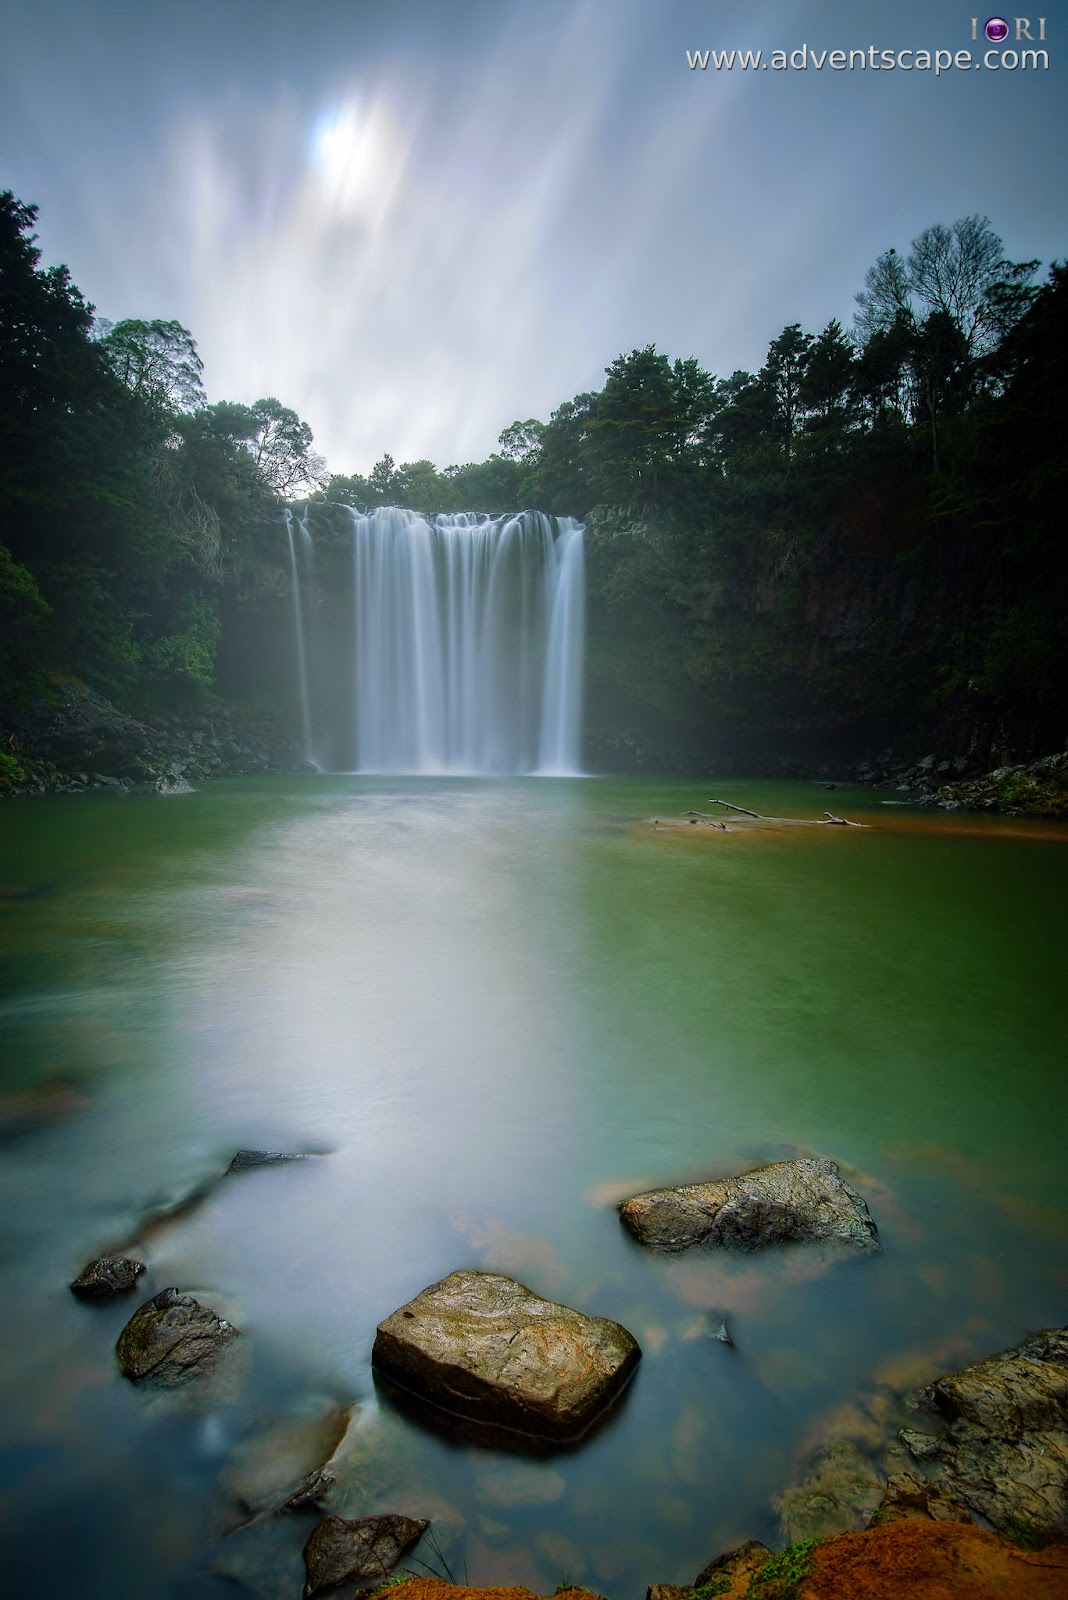 Philip Avellana, iori, Australian Landscape Photographer, adventscape, New Zealand, falls, waterfalls, nature photos, Kerikeri, North Island, tour, travel, pool bed